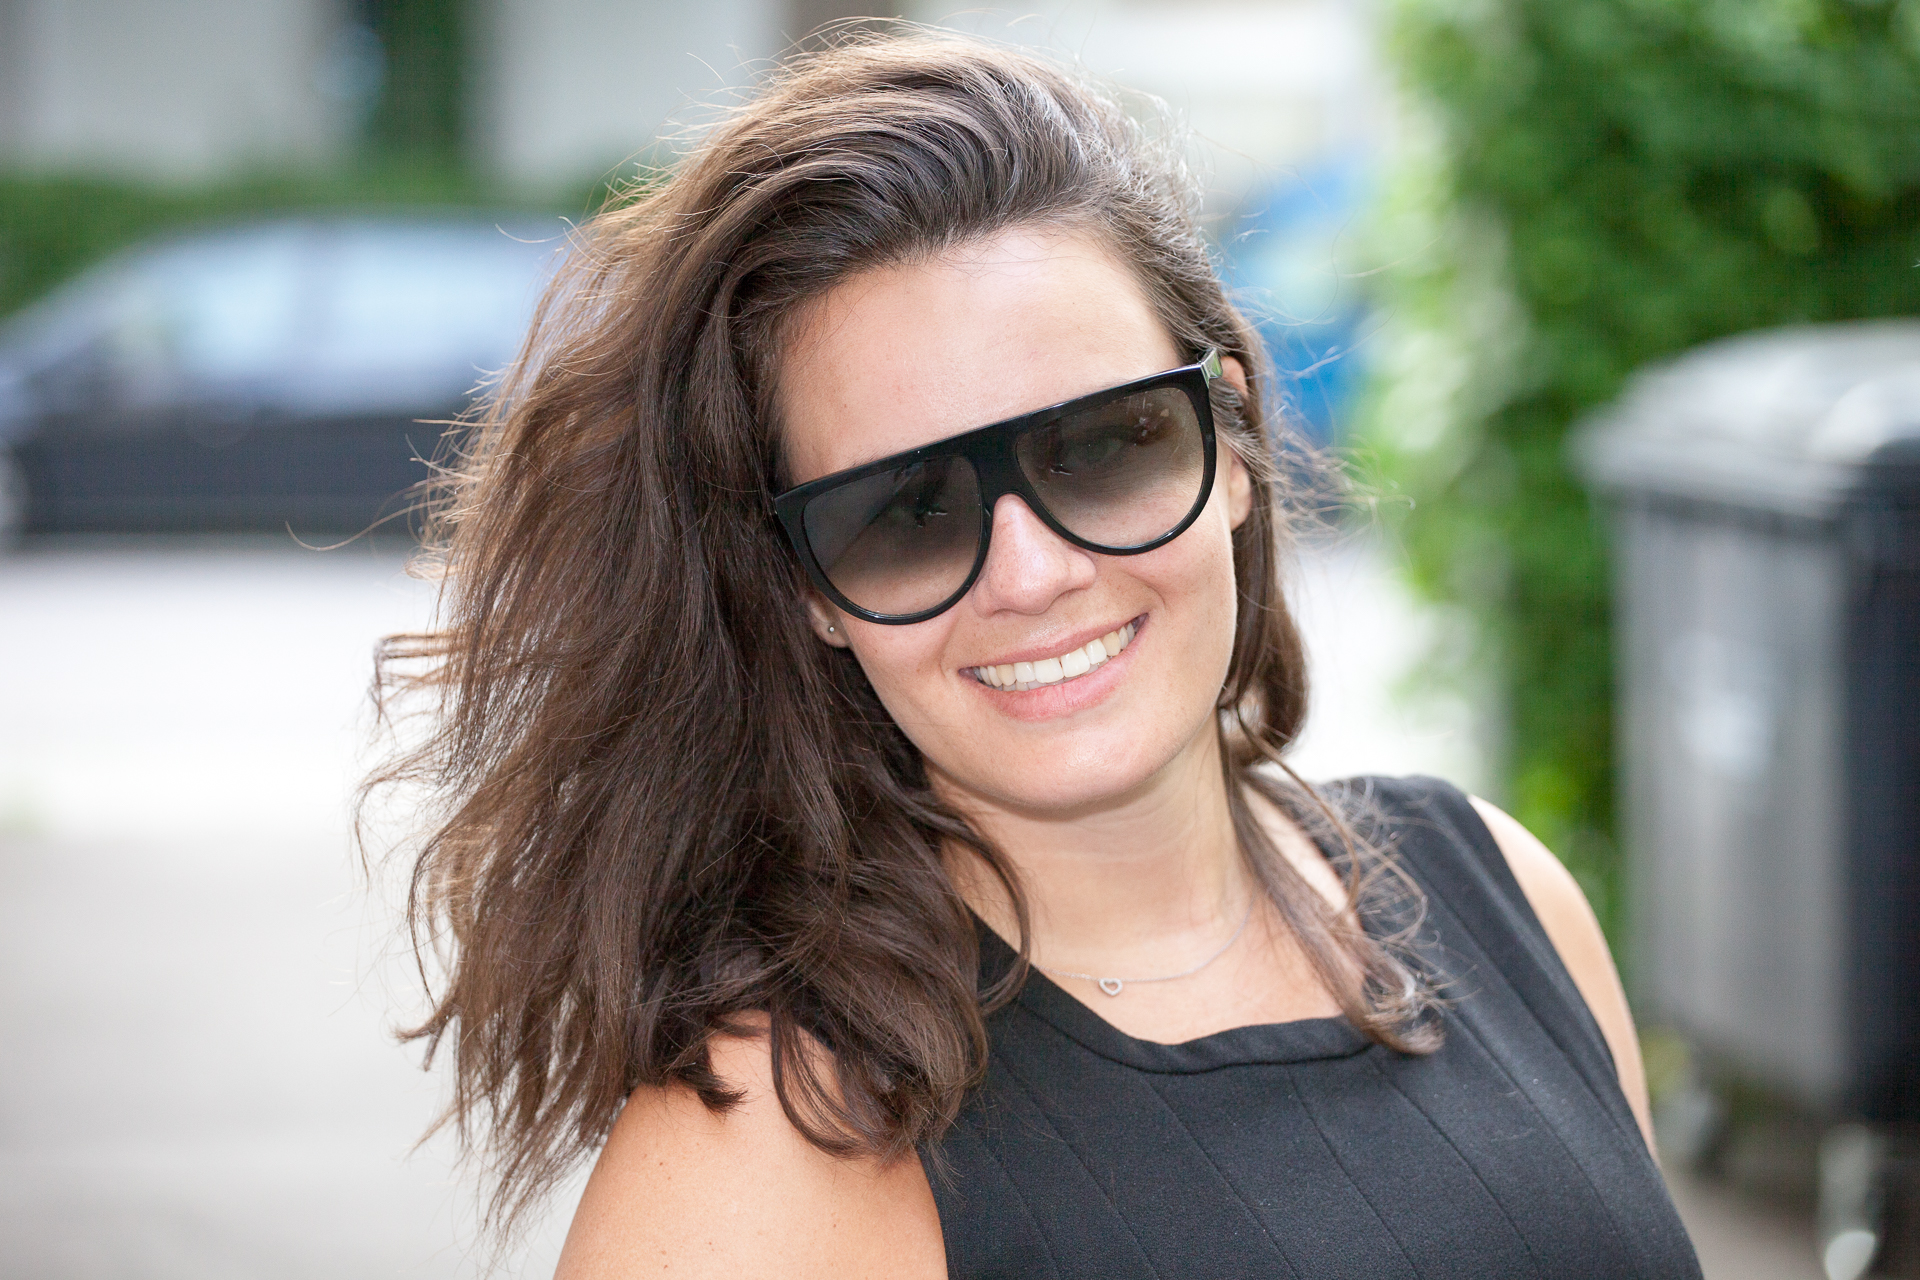 von braun auf blond ich traue mich. Black Bedroom Furniture Sets. Home Design Ideas